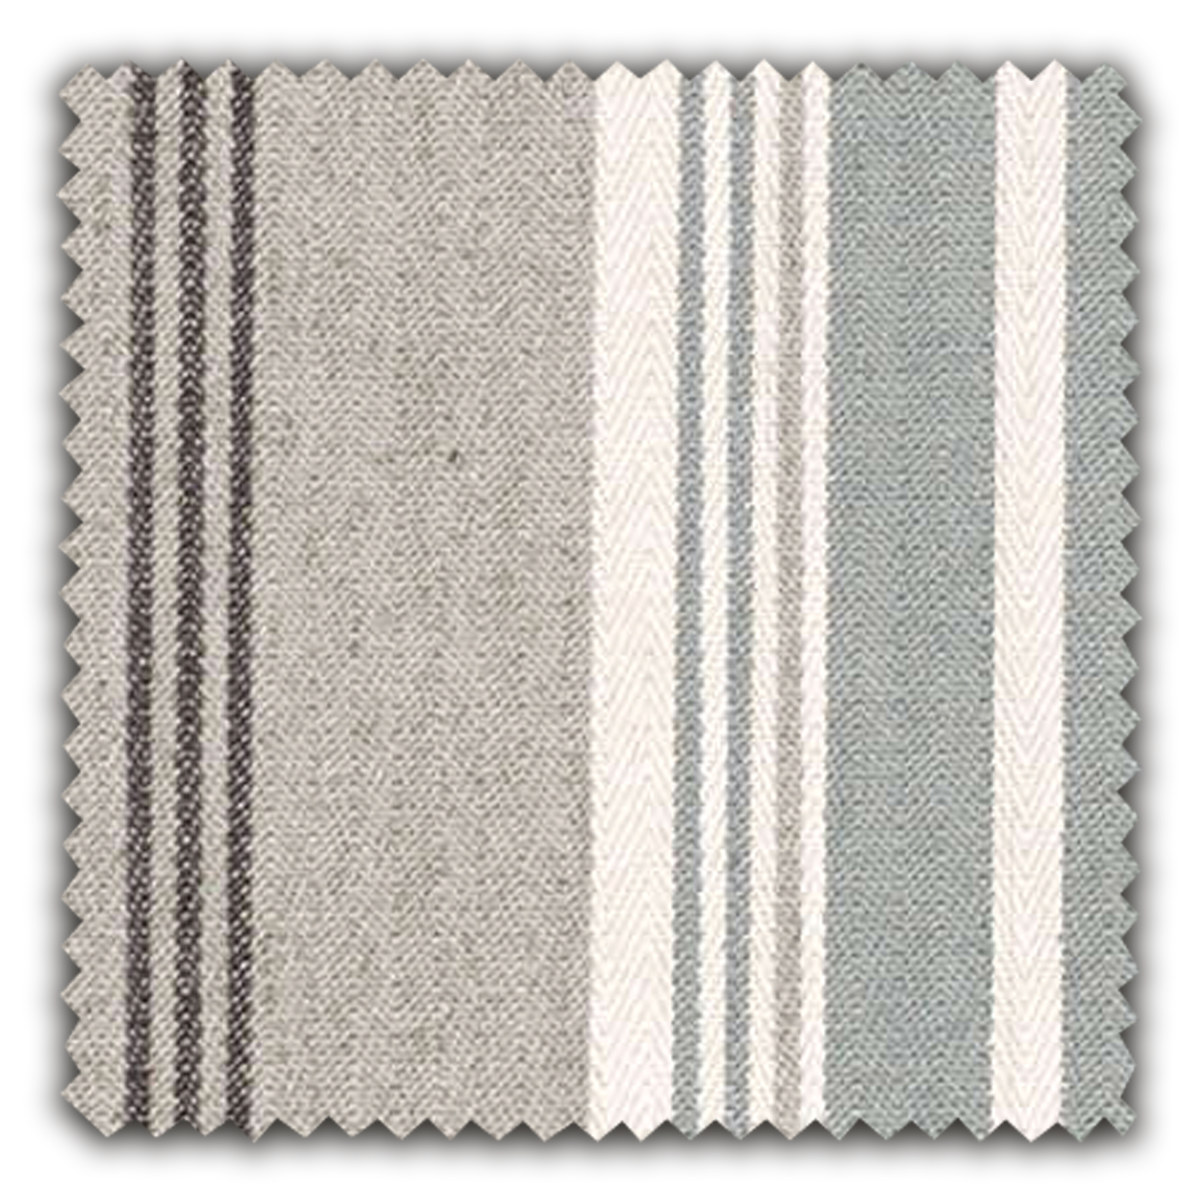 Image of Herringbone Stripe fabric